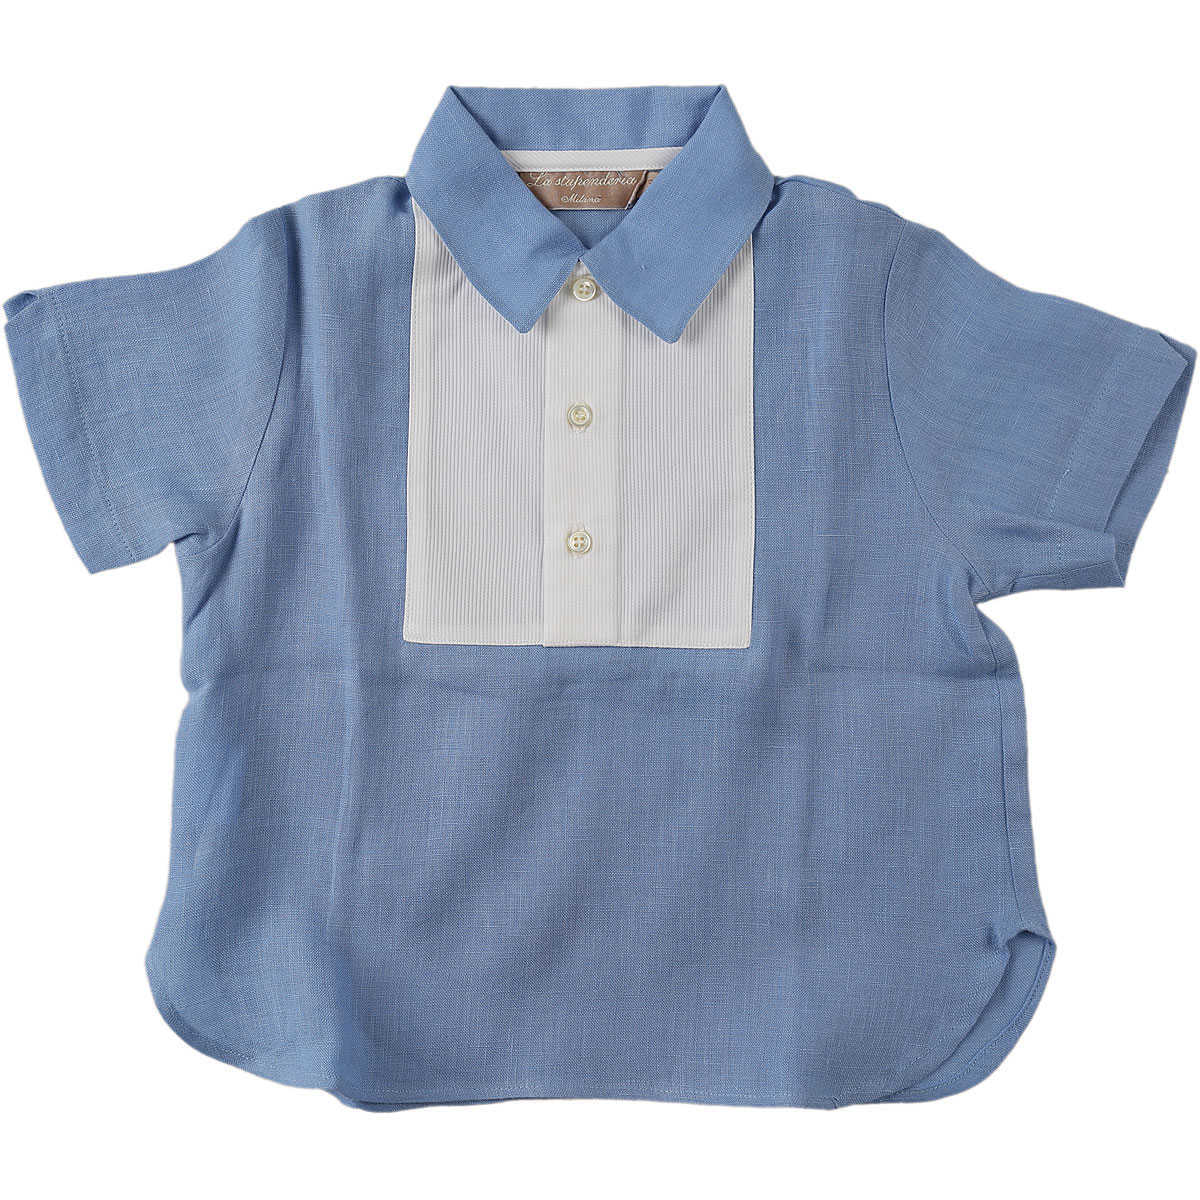 La Stupenderia Baby T-Shirt for Boys On Sale in Outlet Blue UK - GOOFASH - Mens T-SHIRTS